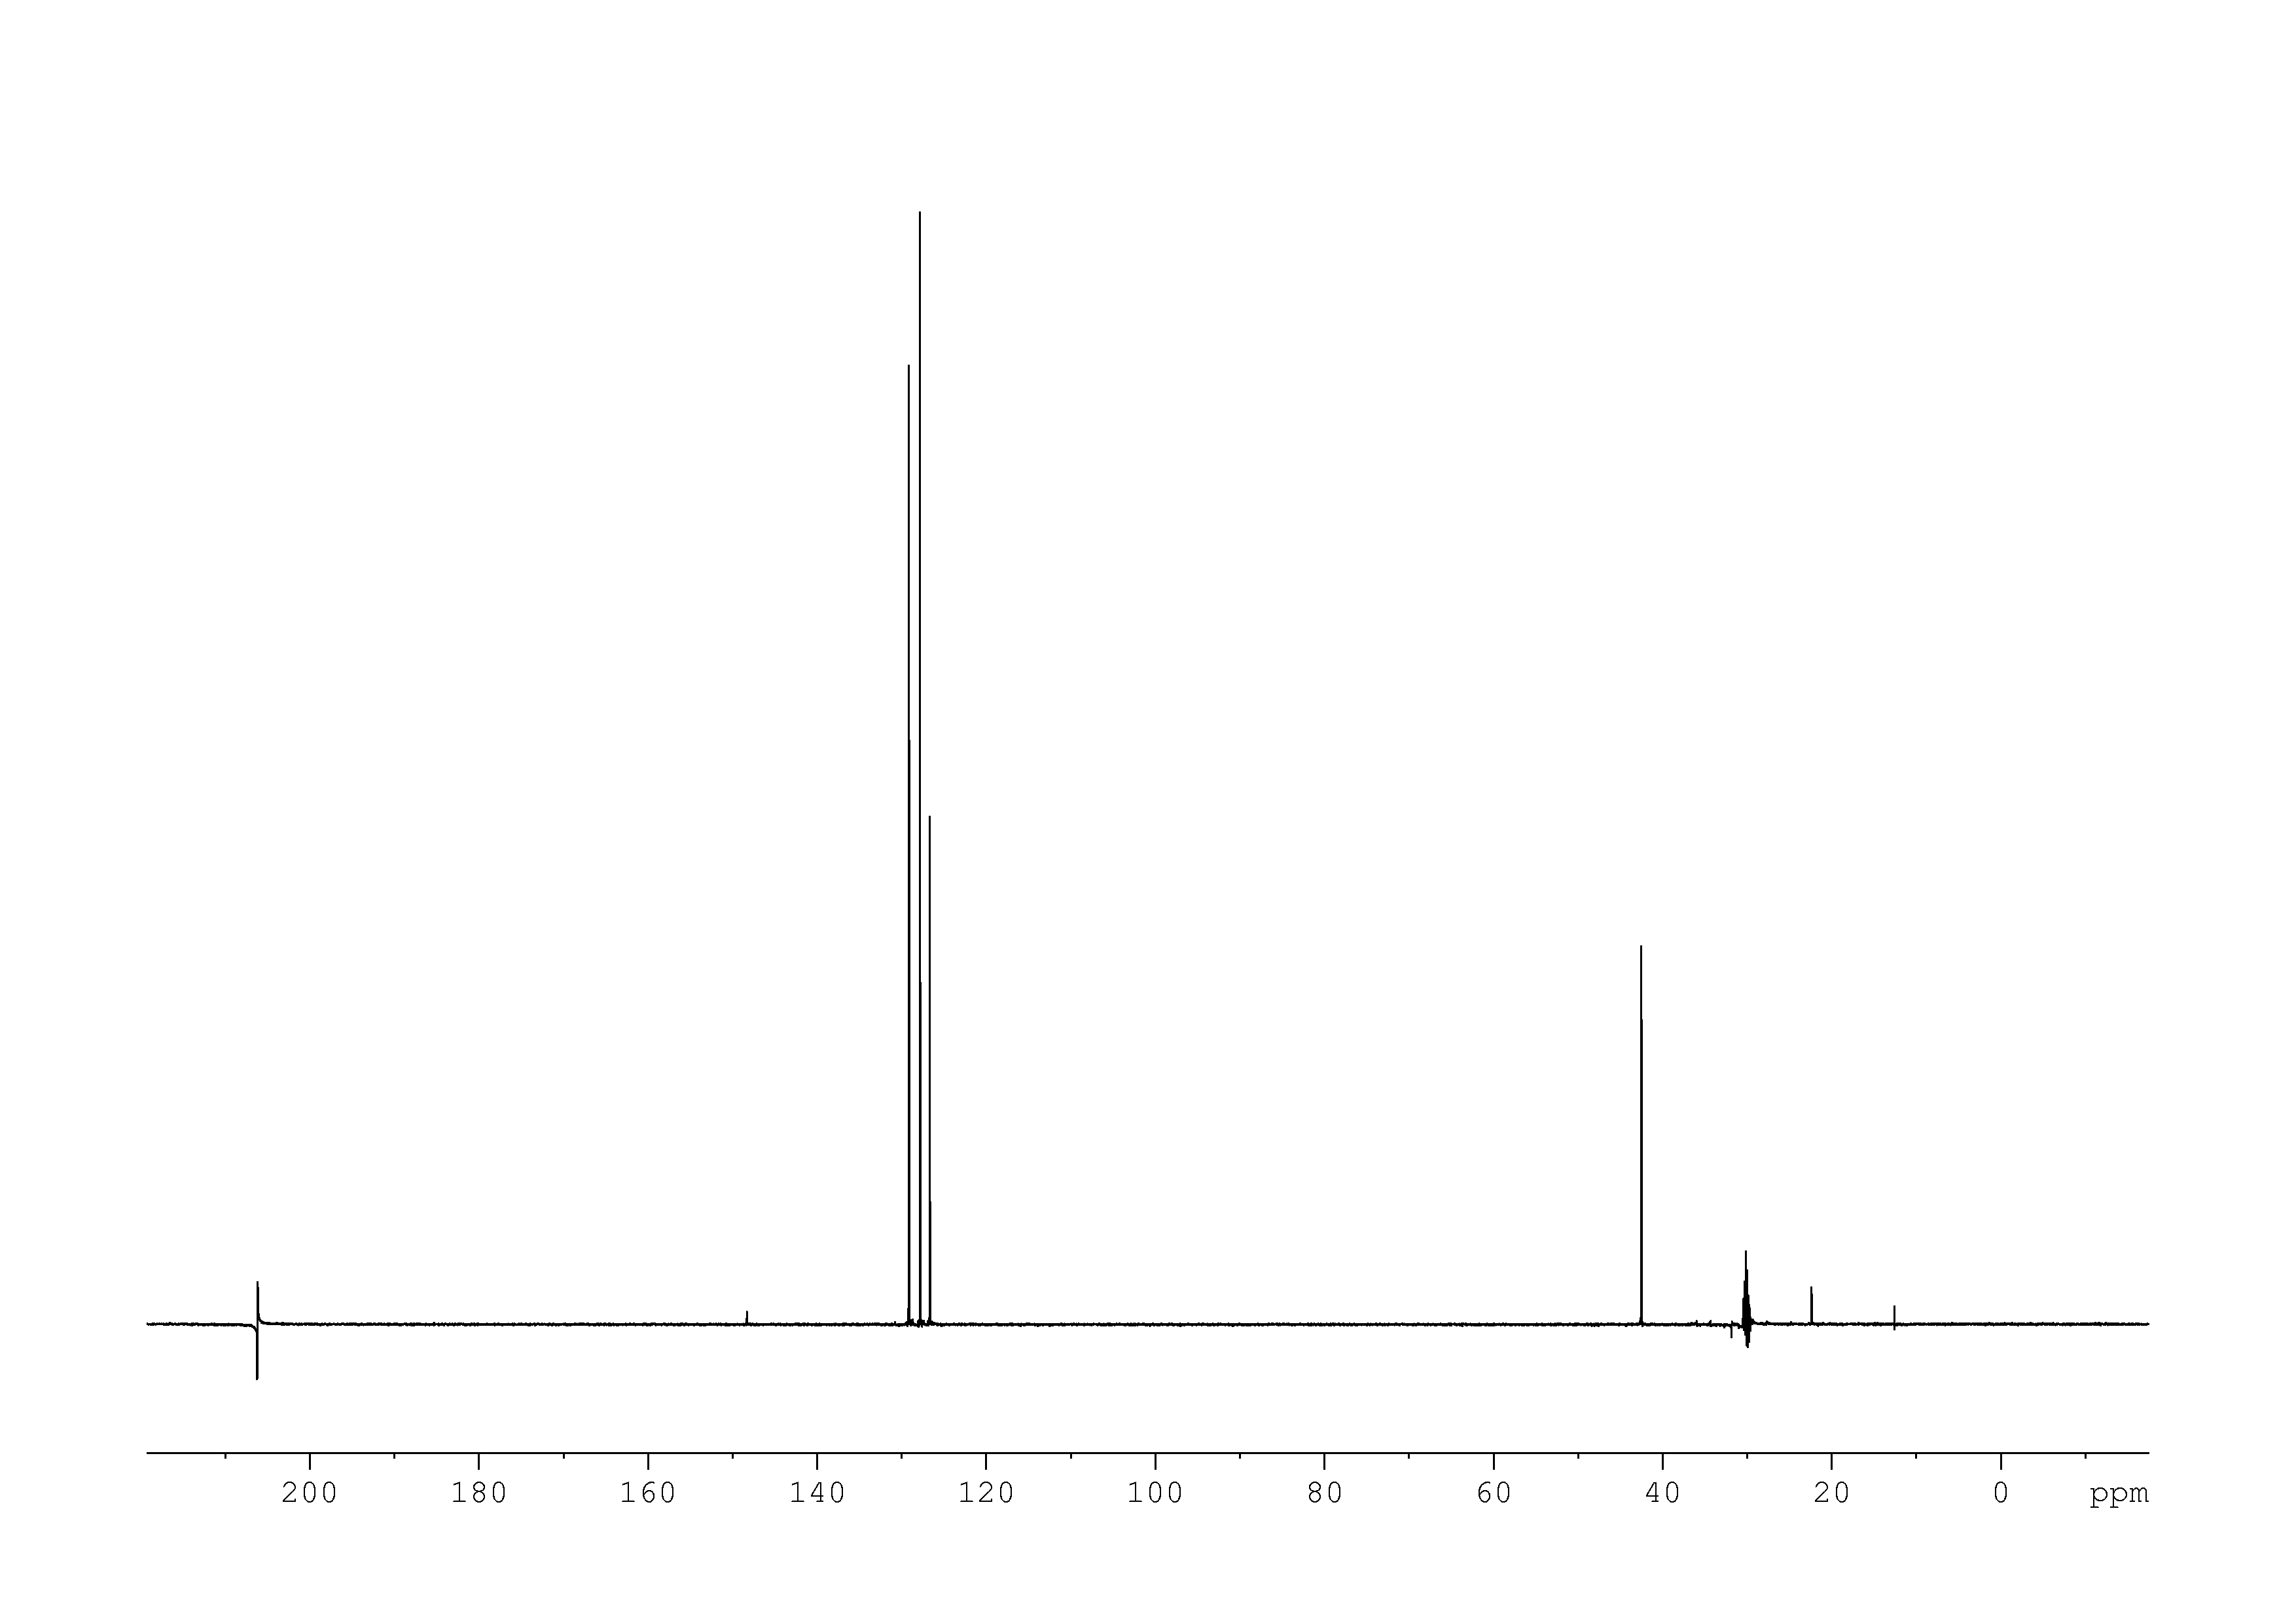 1D DEPT90, n/a spectrum for sec-butylbenzene